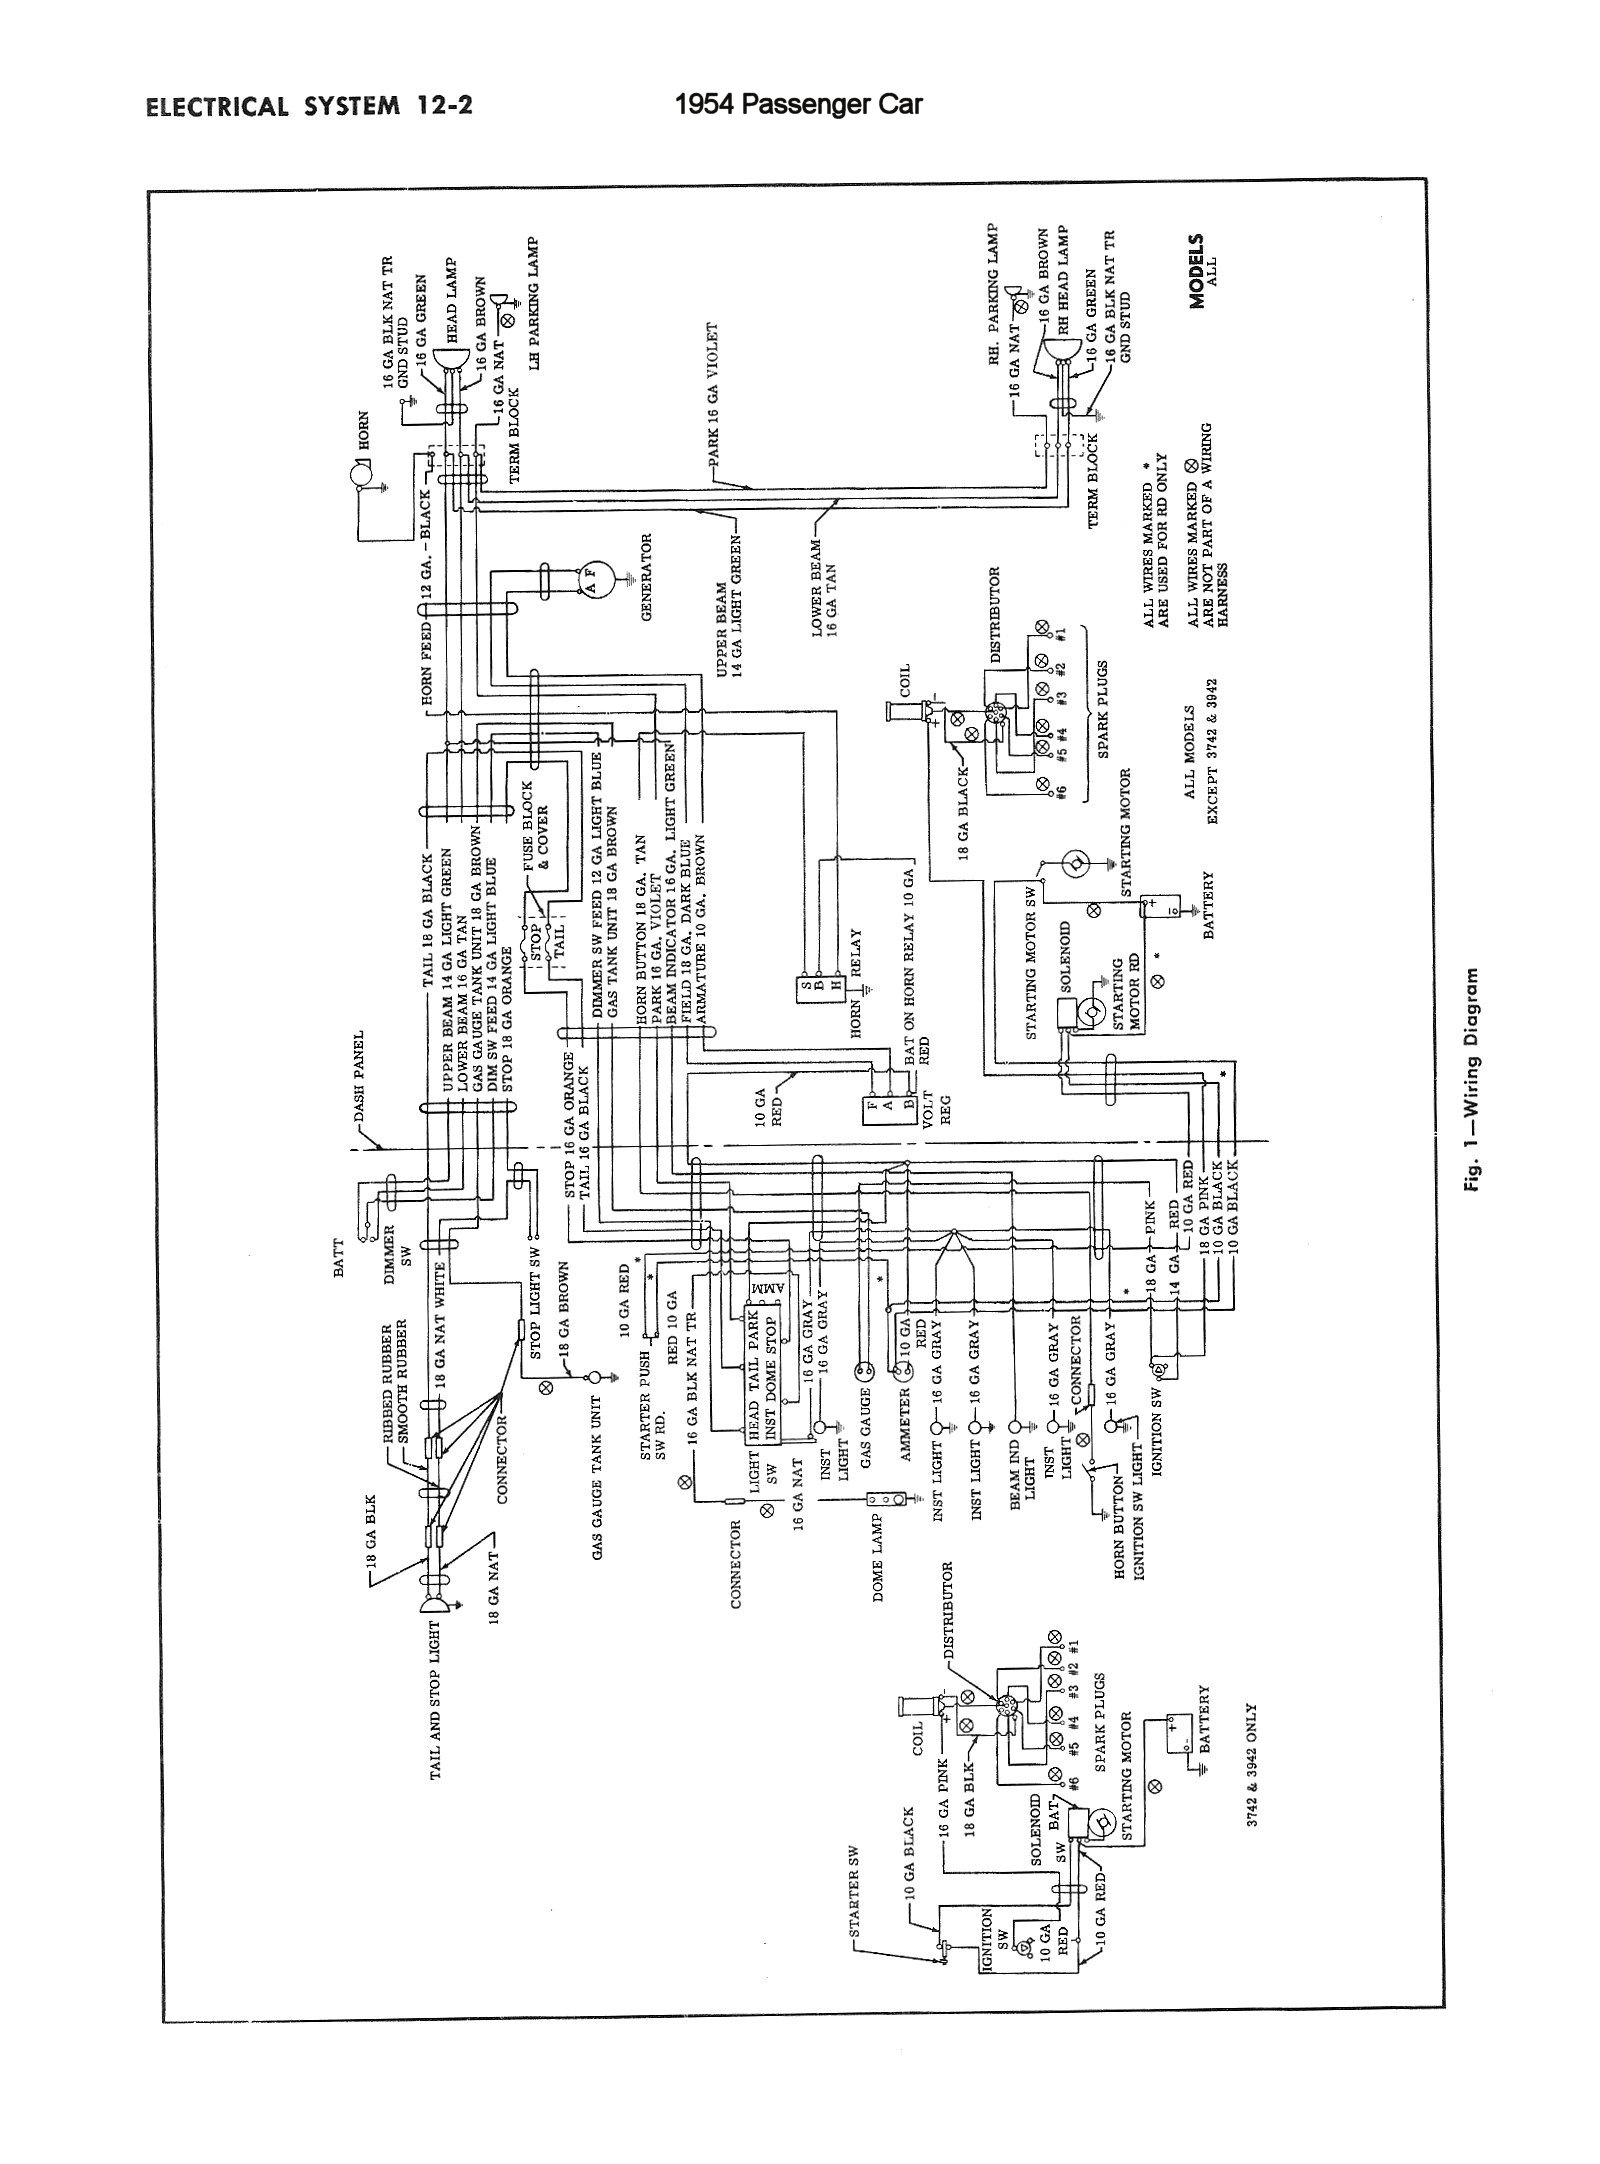 1953 Chevy Wiring Diagram. Chevy. Wiring Diagram Images